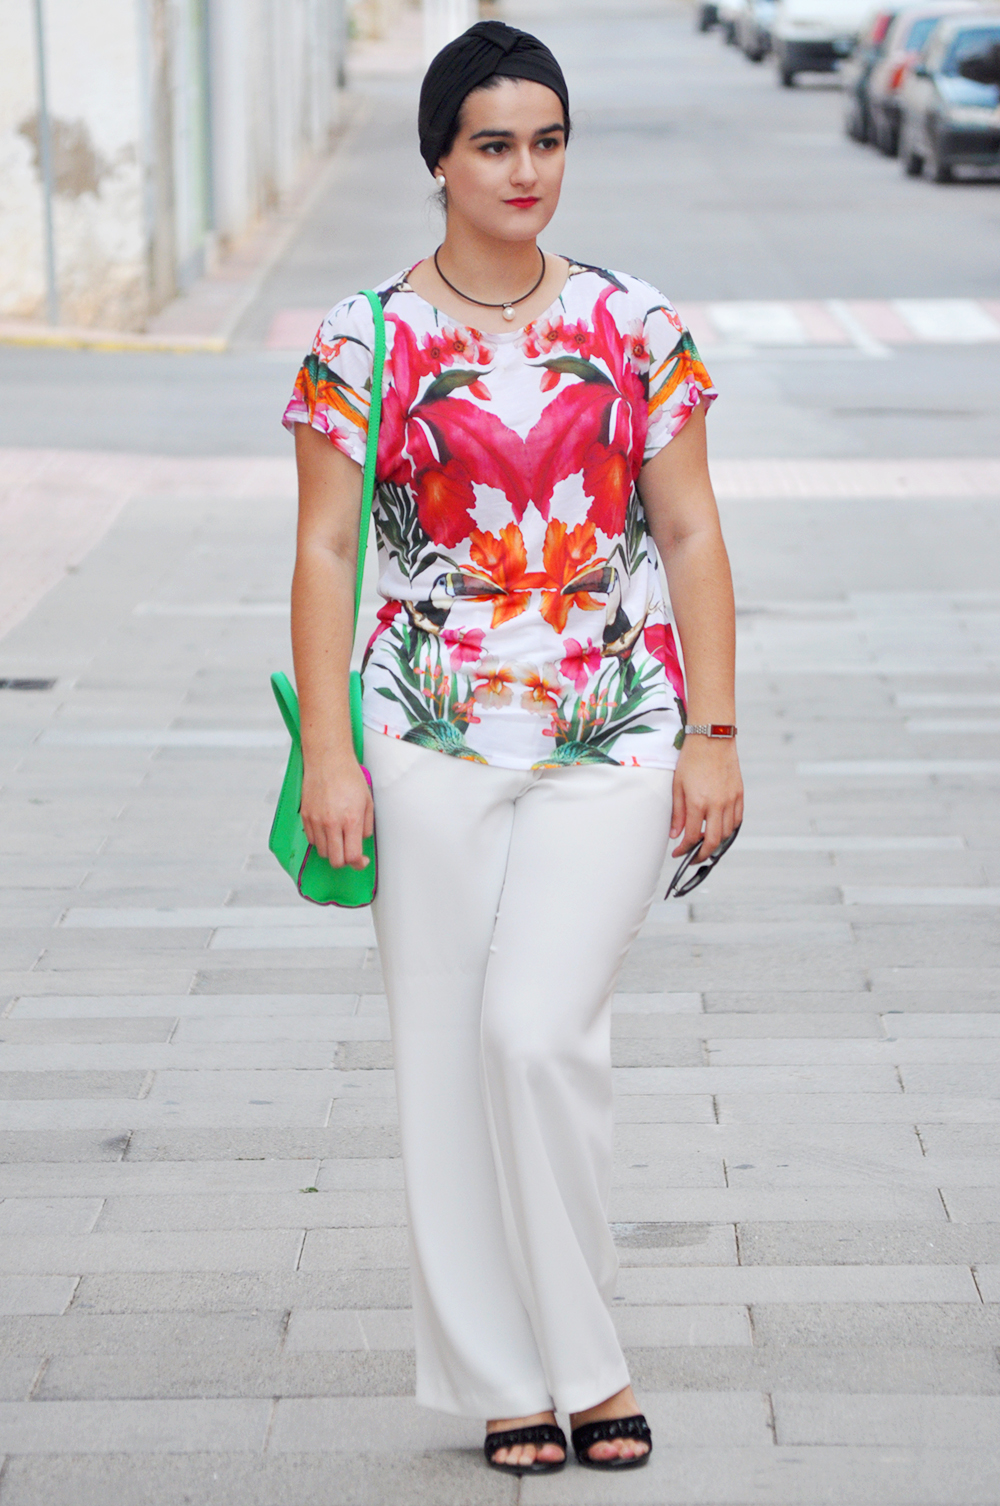 something fashion valencia blogger moda estilo, how to wear a turbant, bimba y lola neón green bag, ted baker T-shirt, white dress mango pants how to style rock total white floral outfit